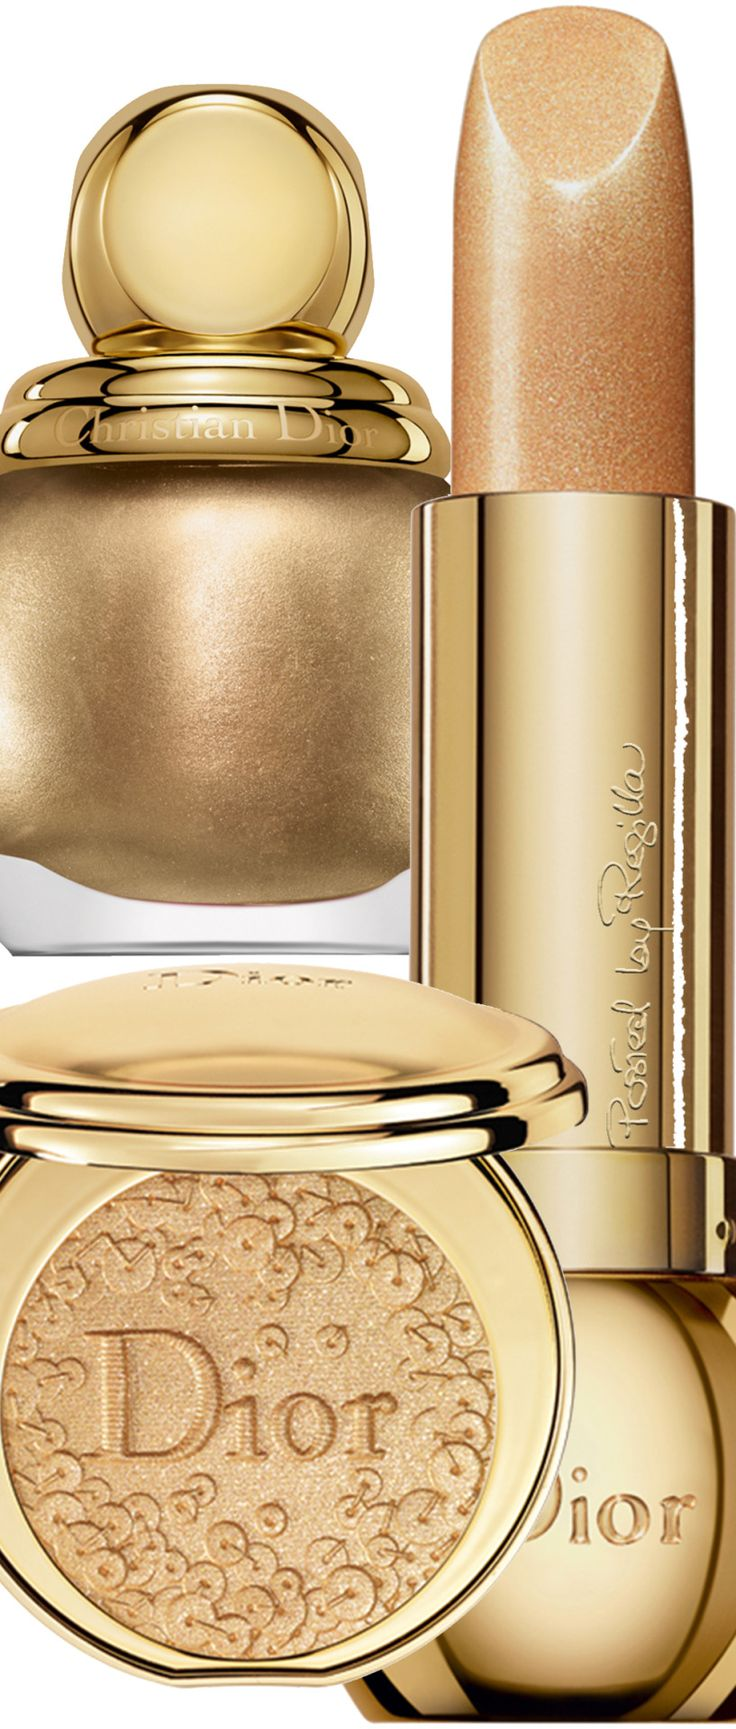 Regilla ⚜ Dior luxury beauty products